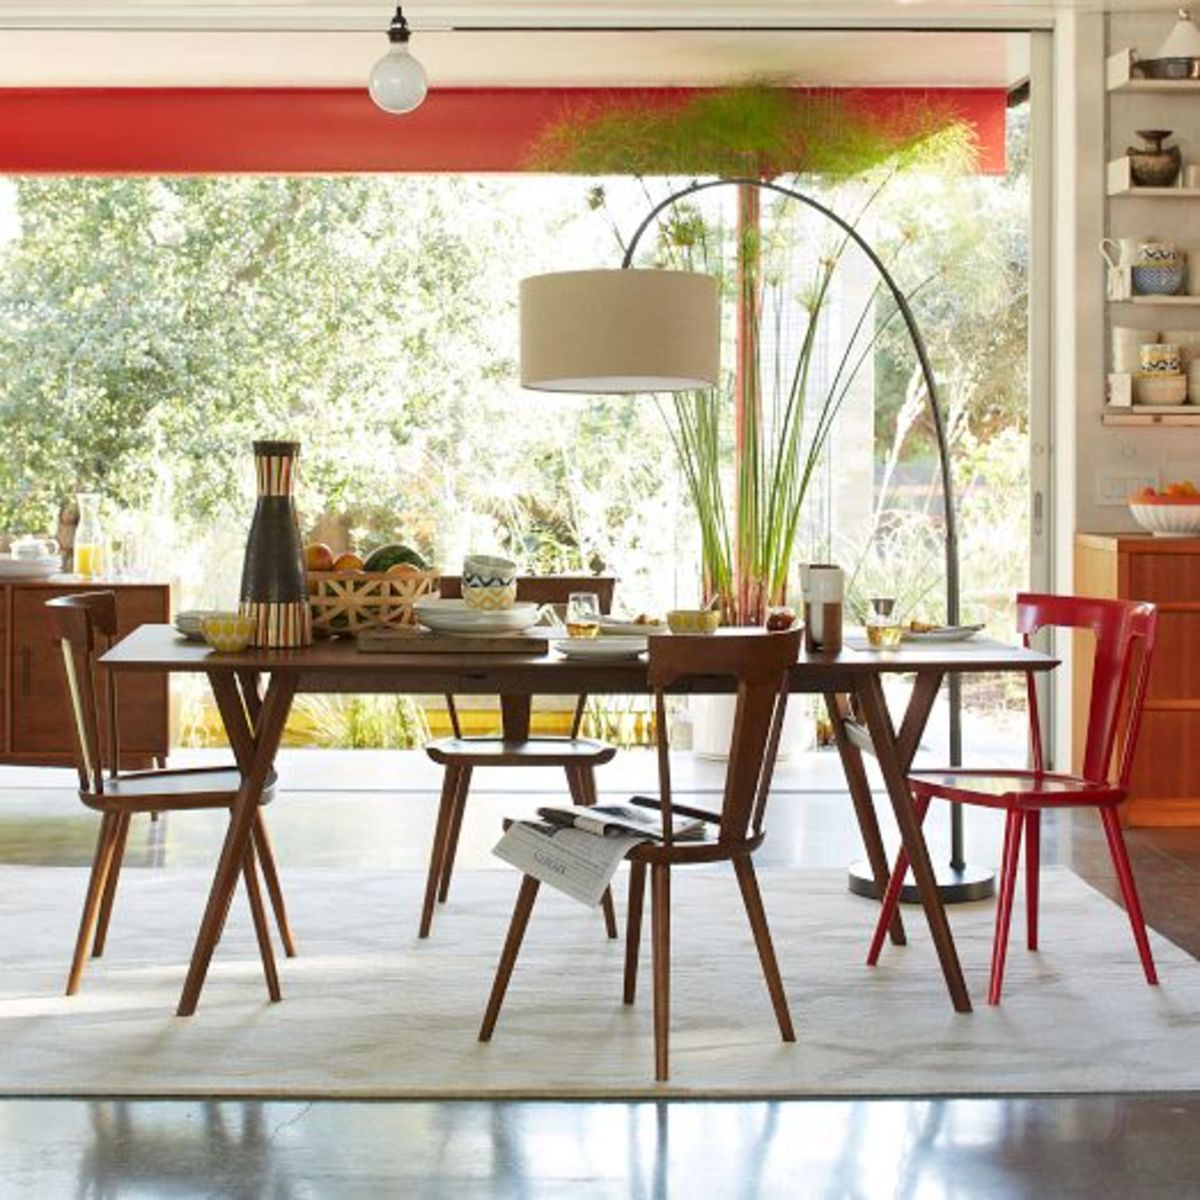 Magnificent MidCentury Modern for Your Home  Organic Authority